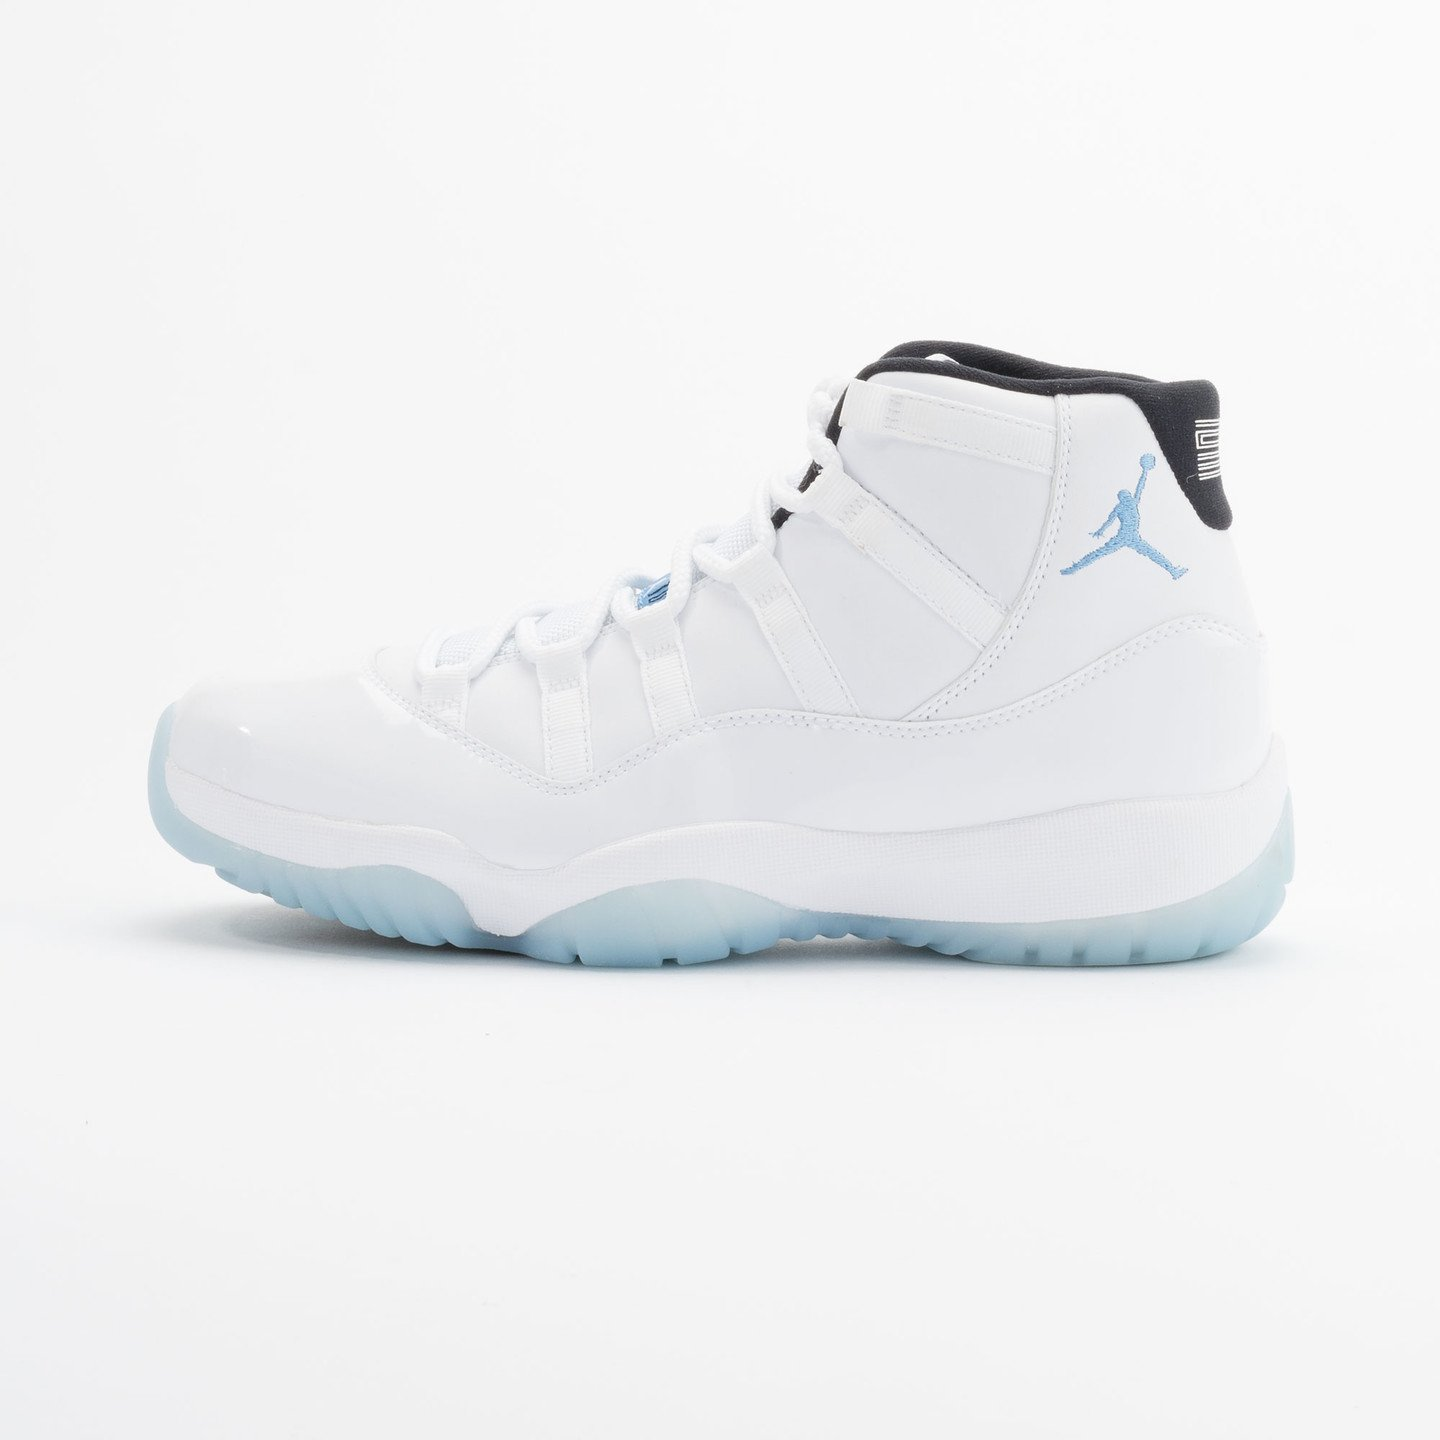 Jordan Air Jordan 11 Retro White/Legend Blue-Black 378037-117-47.5